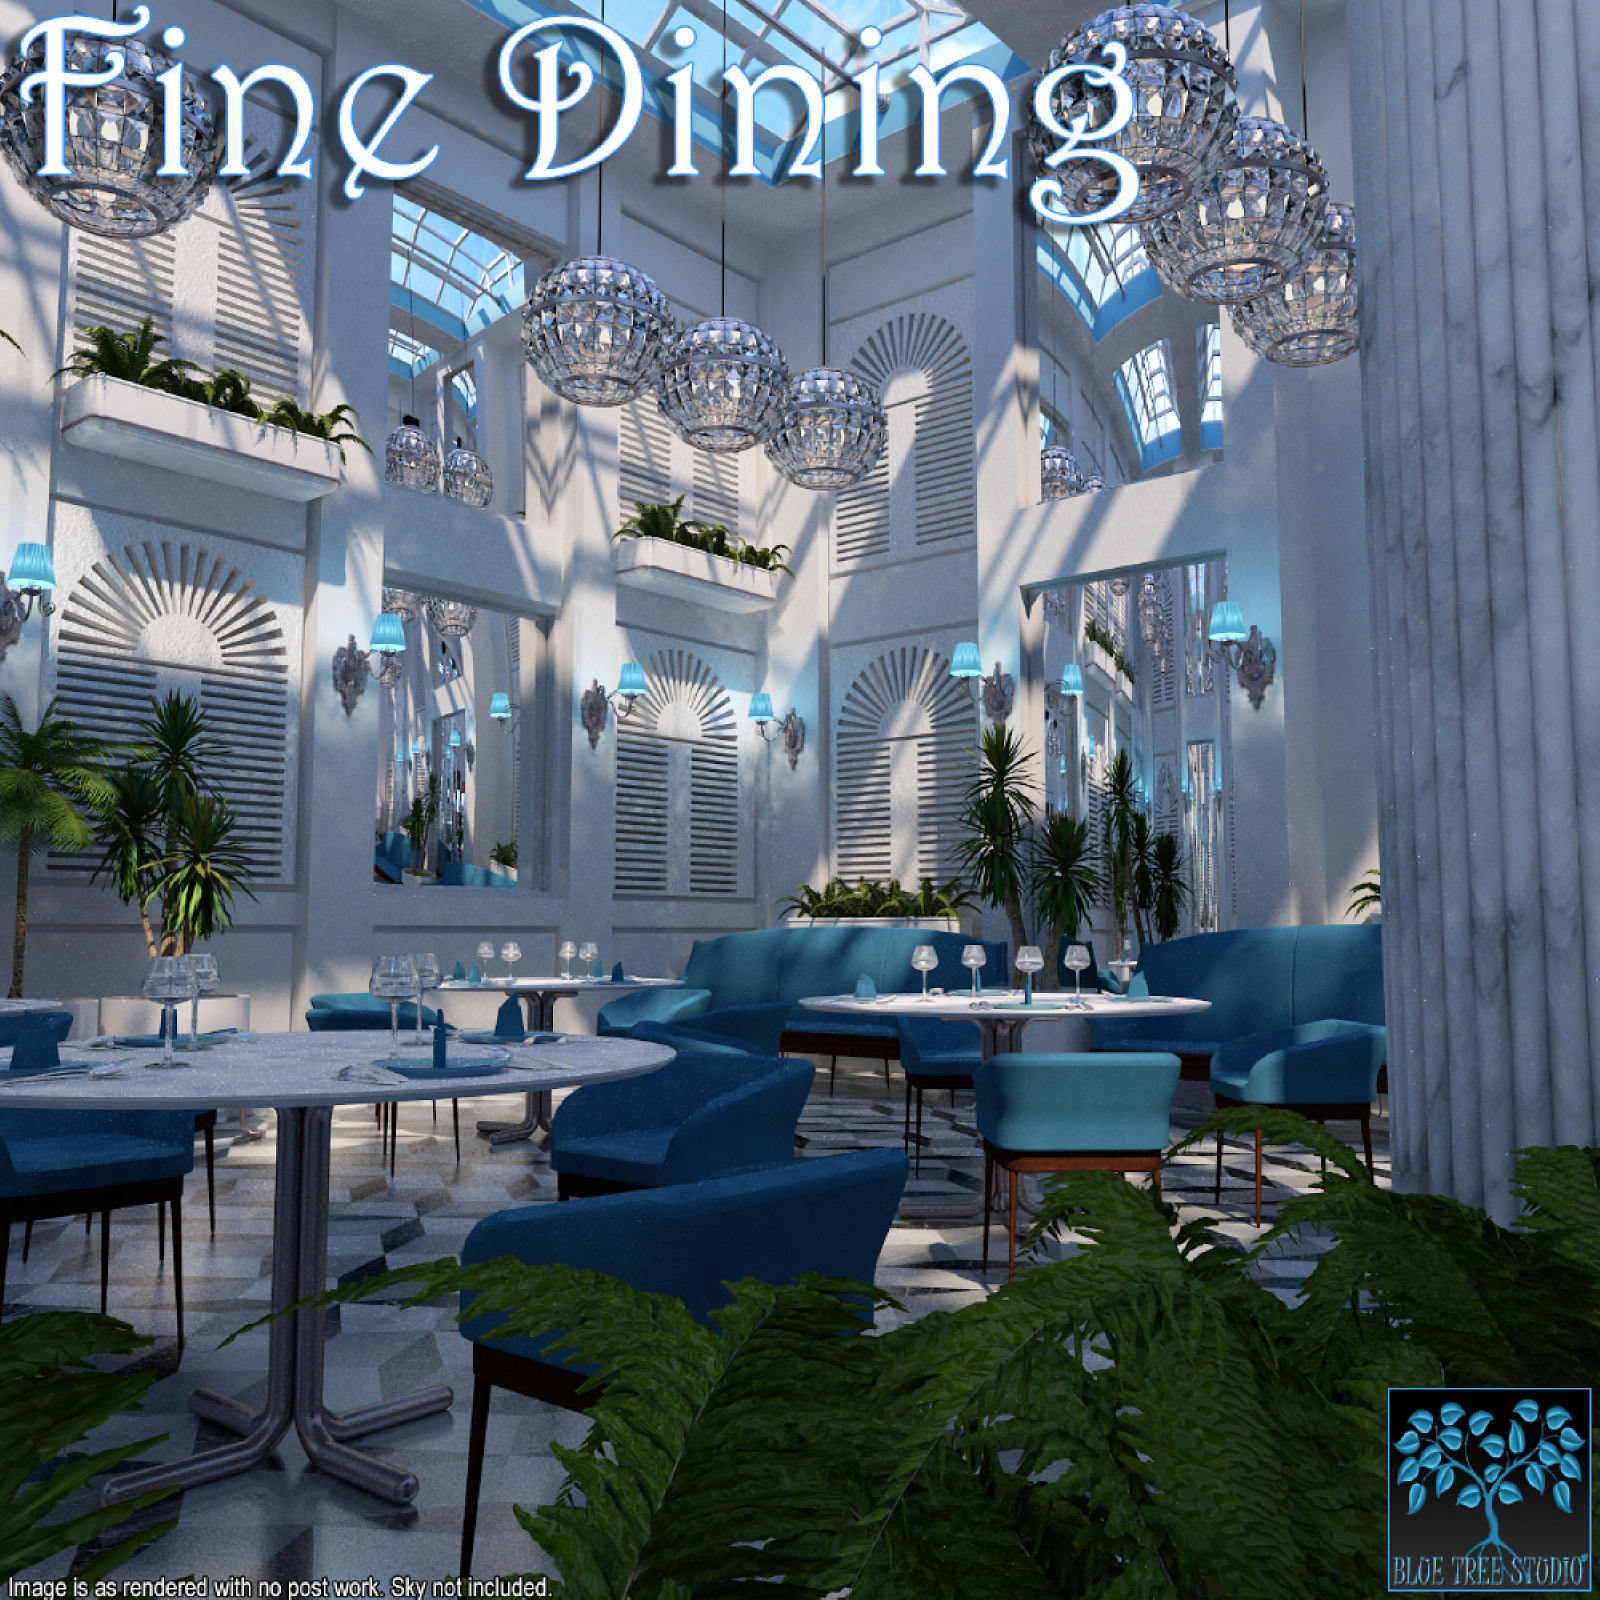 Fine Dining for Poser by BlueTreeStudio